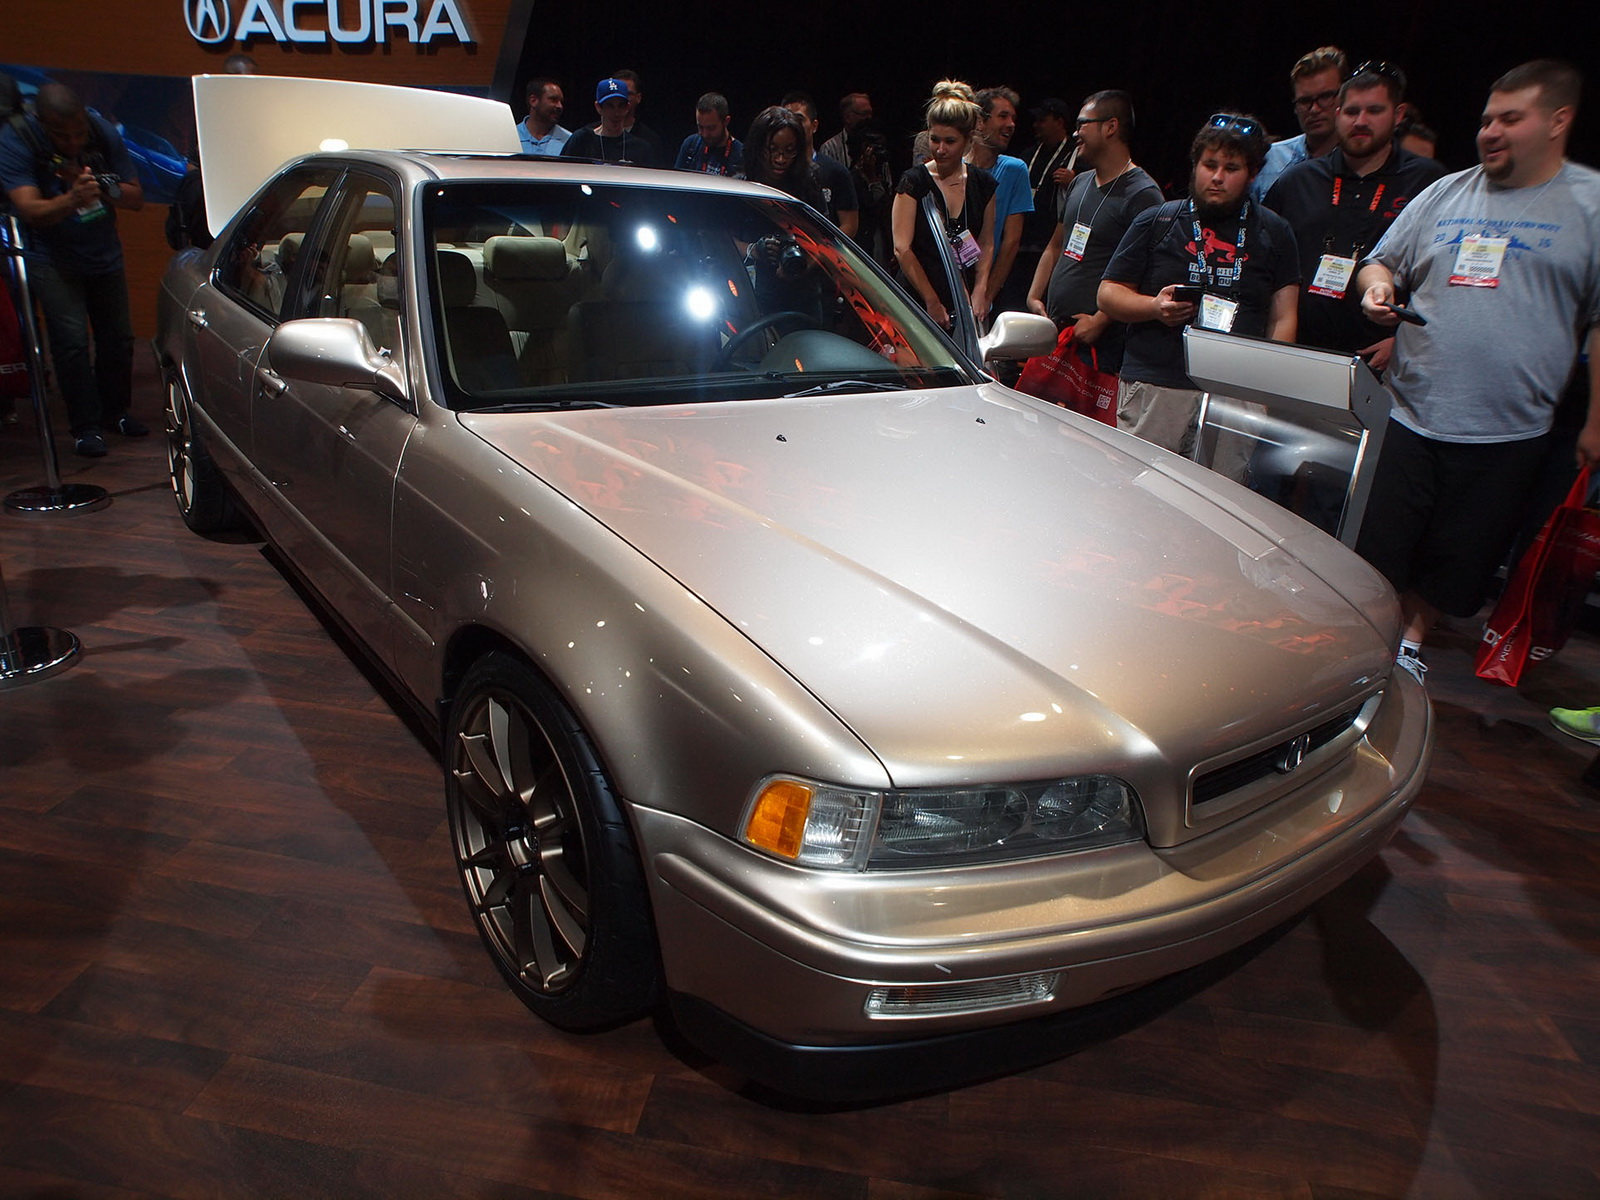 Ludacris Gets His 1993 Legend Restored By Acura W Video